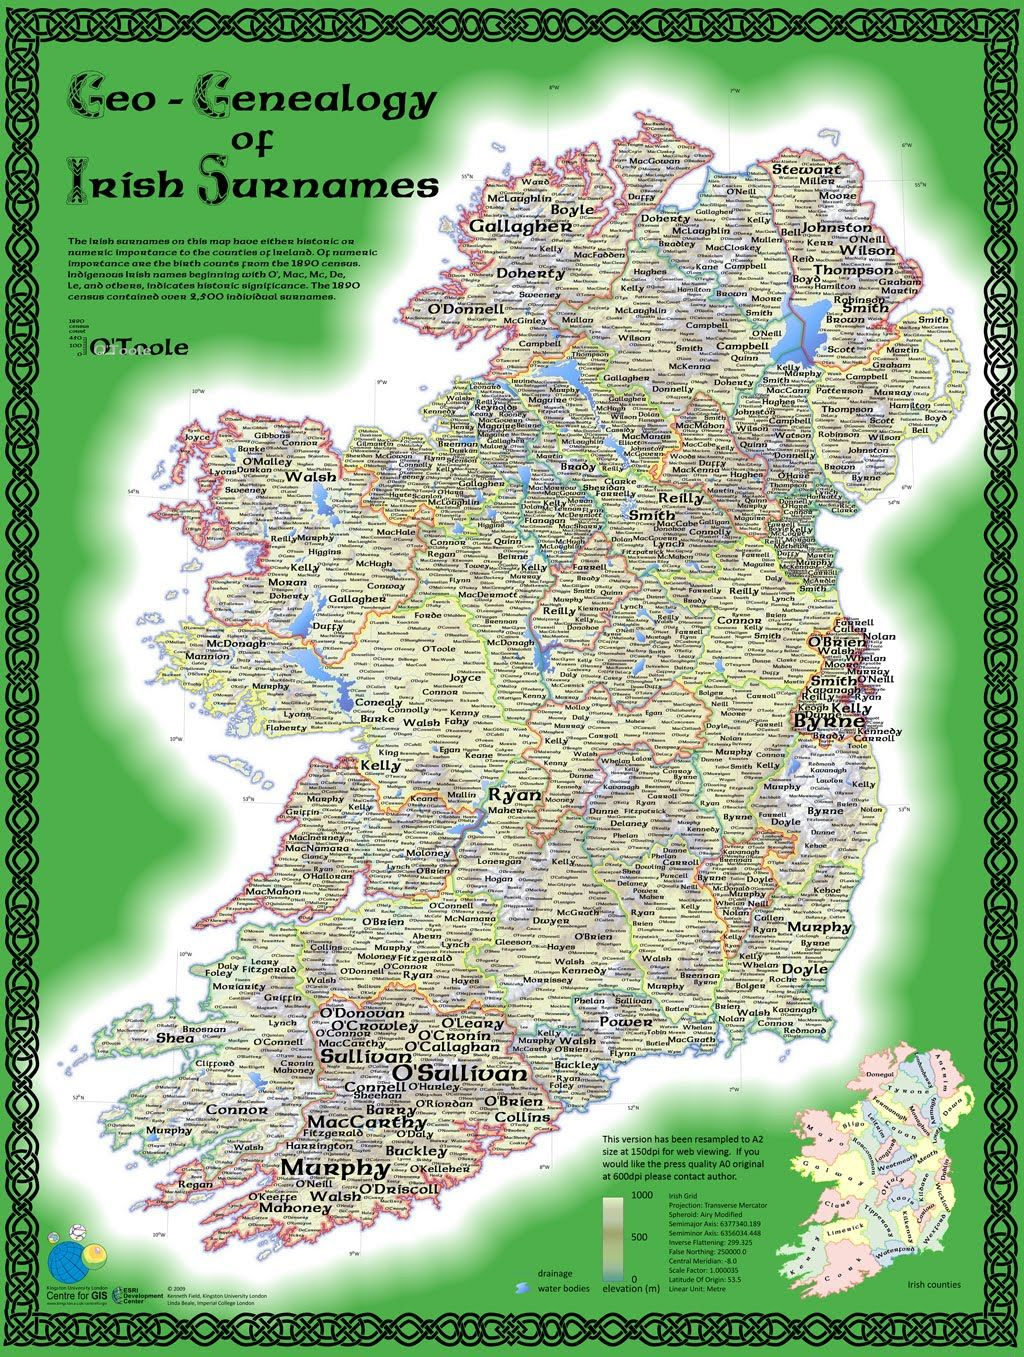 Ancestral Map Of Ireland YOUR ANCESTRAL FAMILY BLOG - Interactive us surnames map